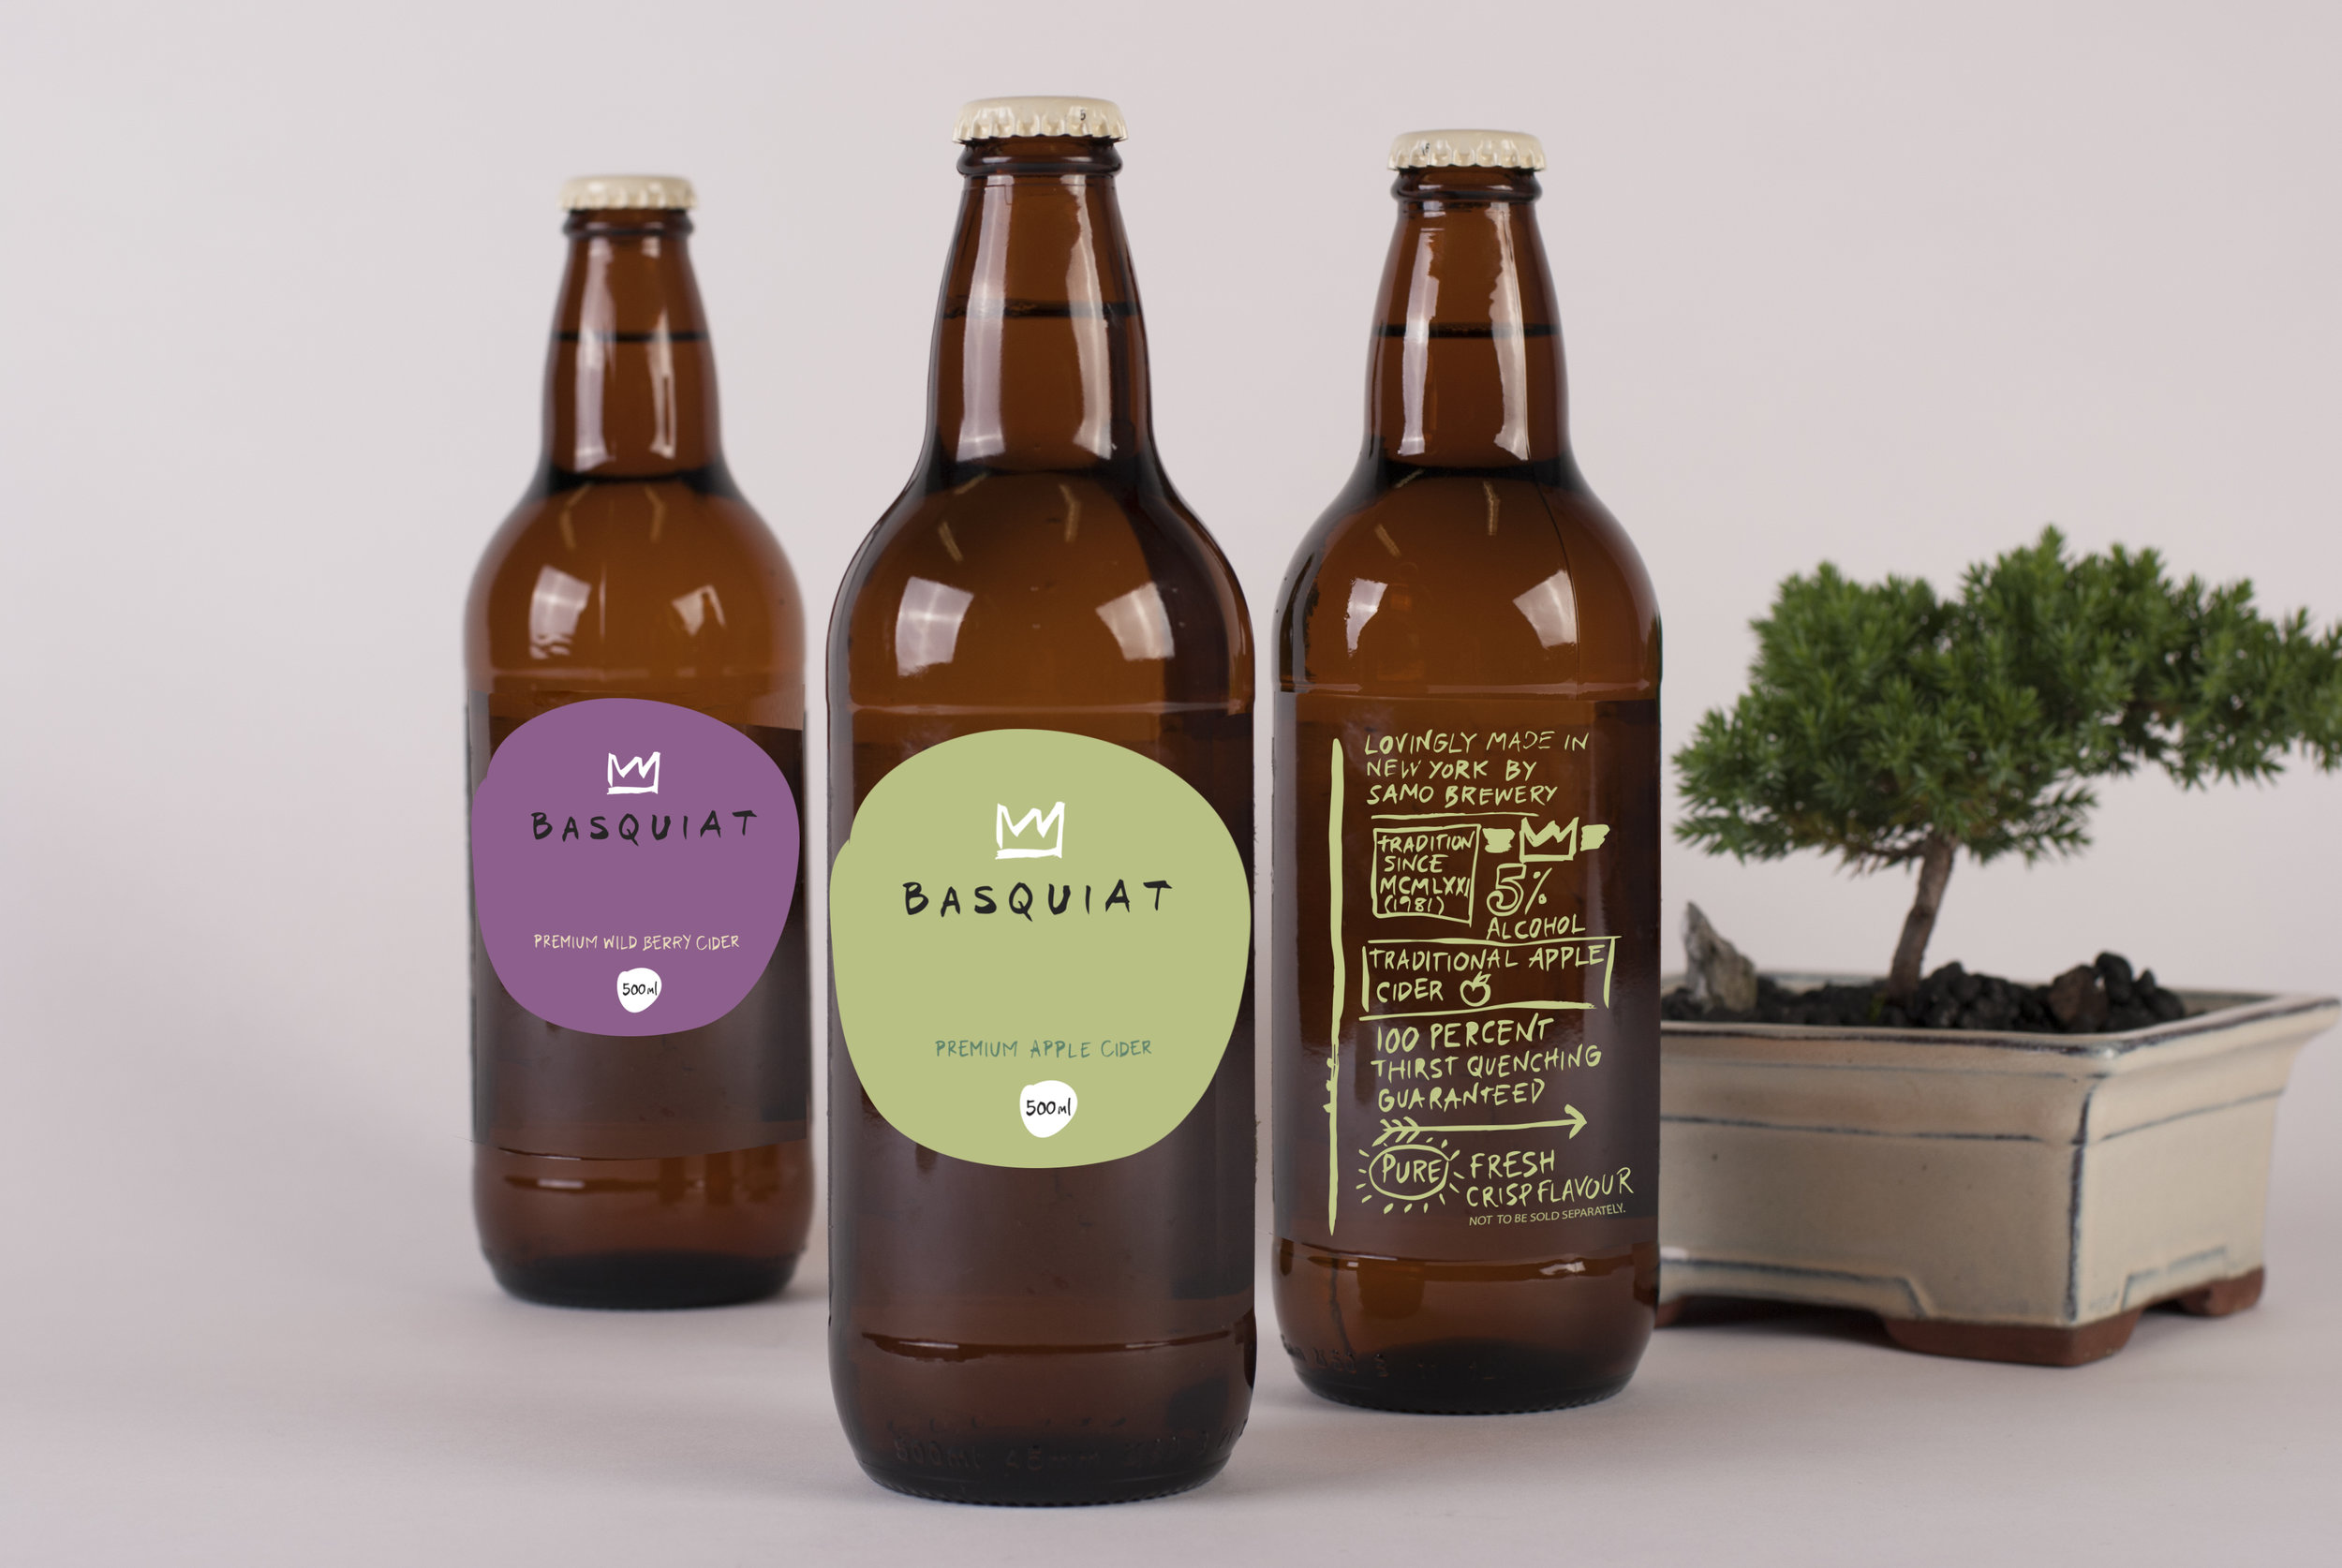 Mockup of labels on the cider bottles I bought from Aldi lol